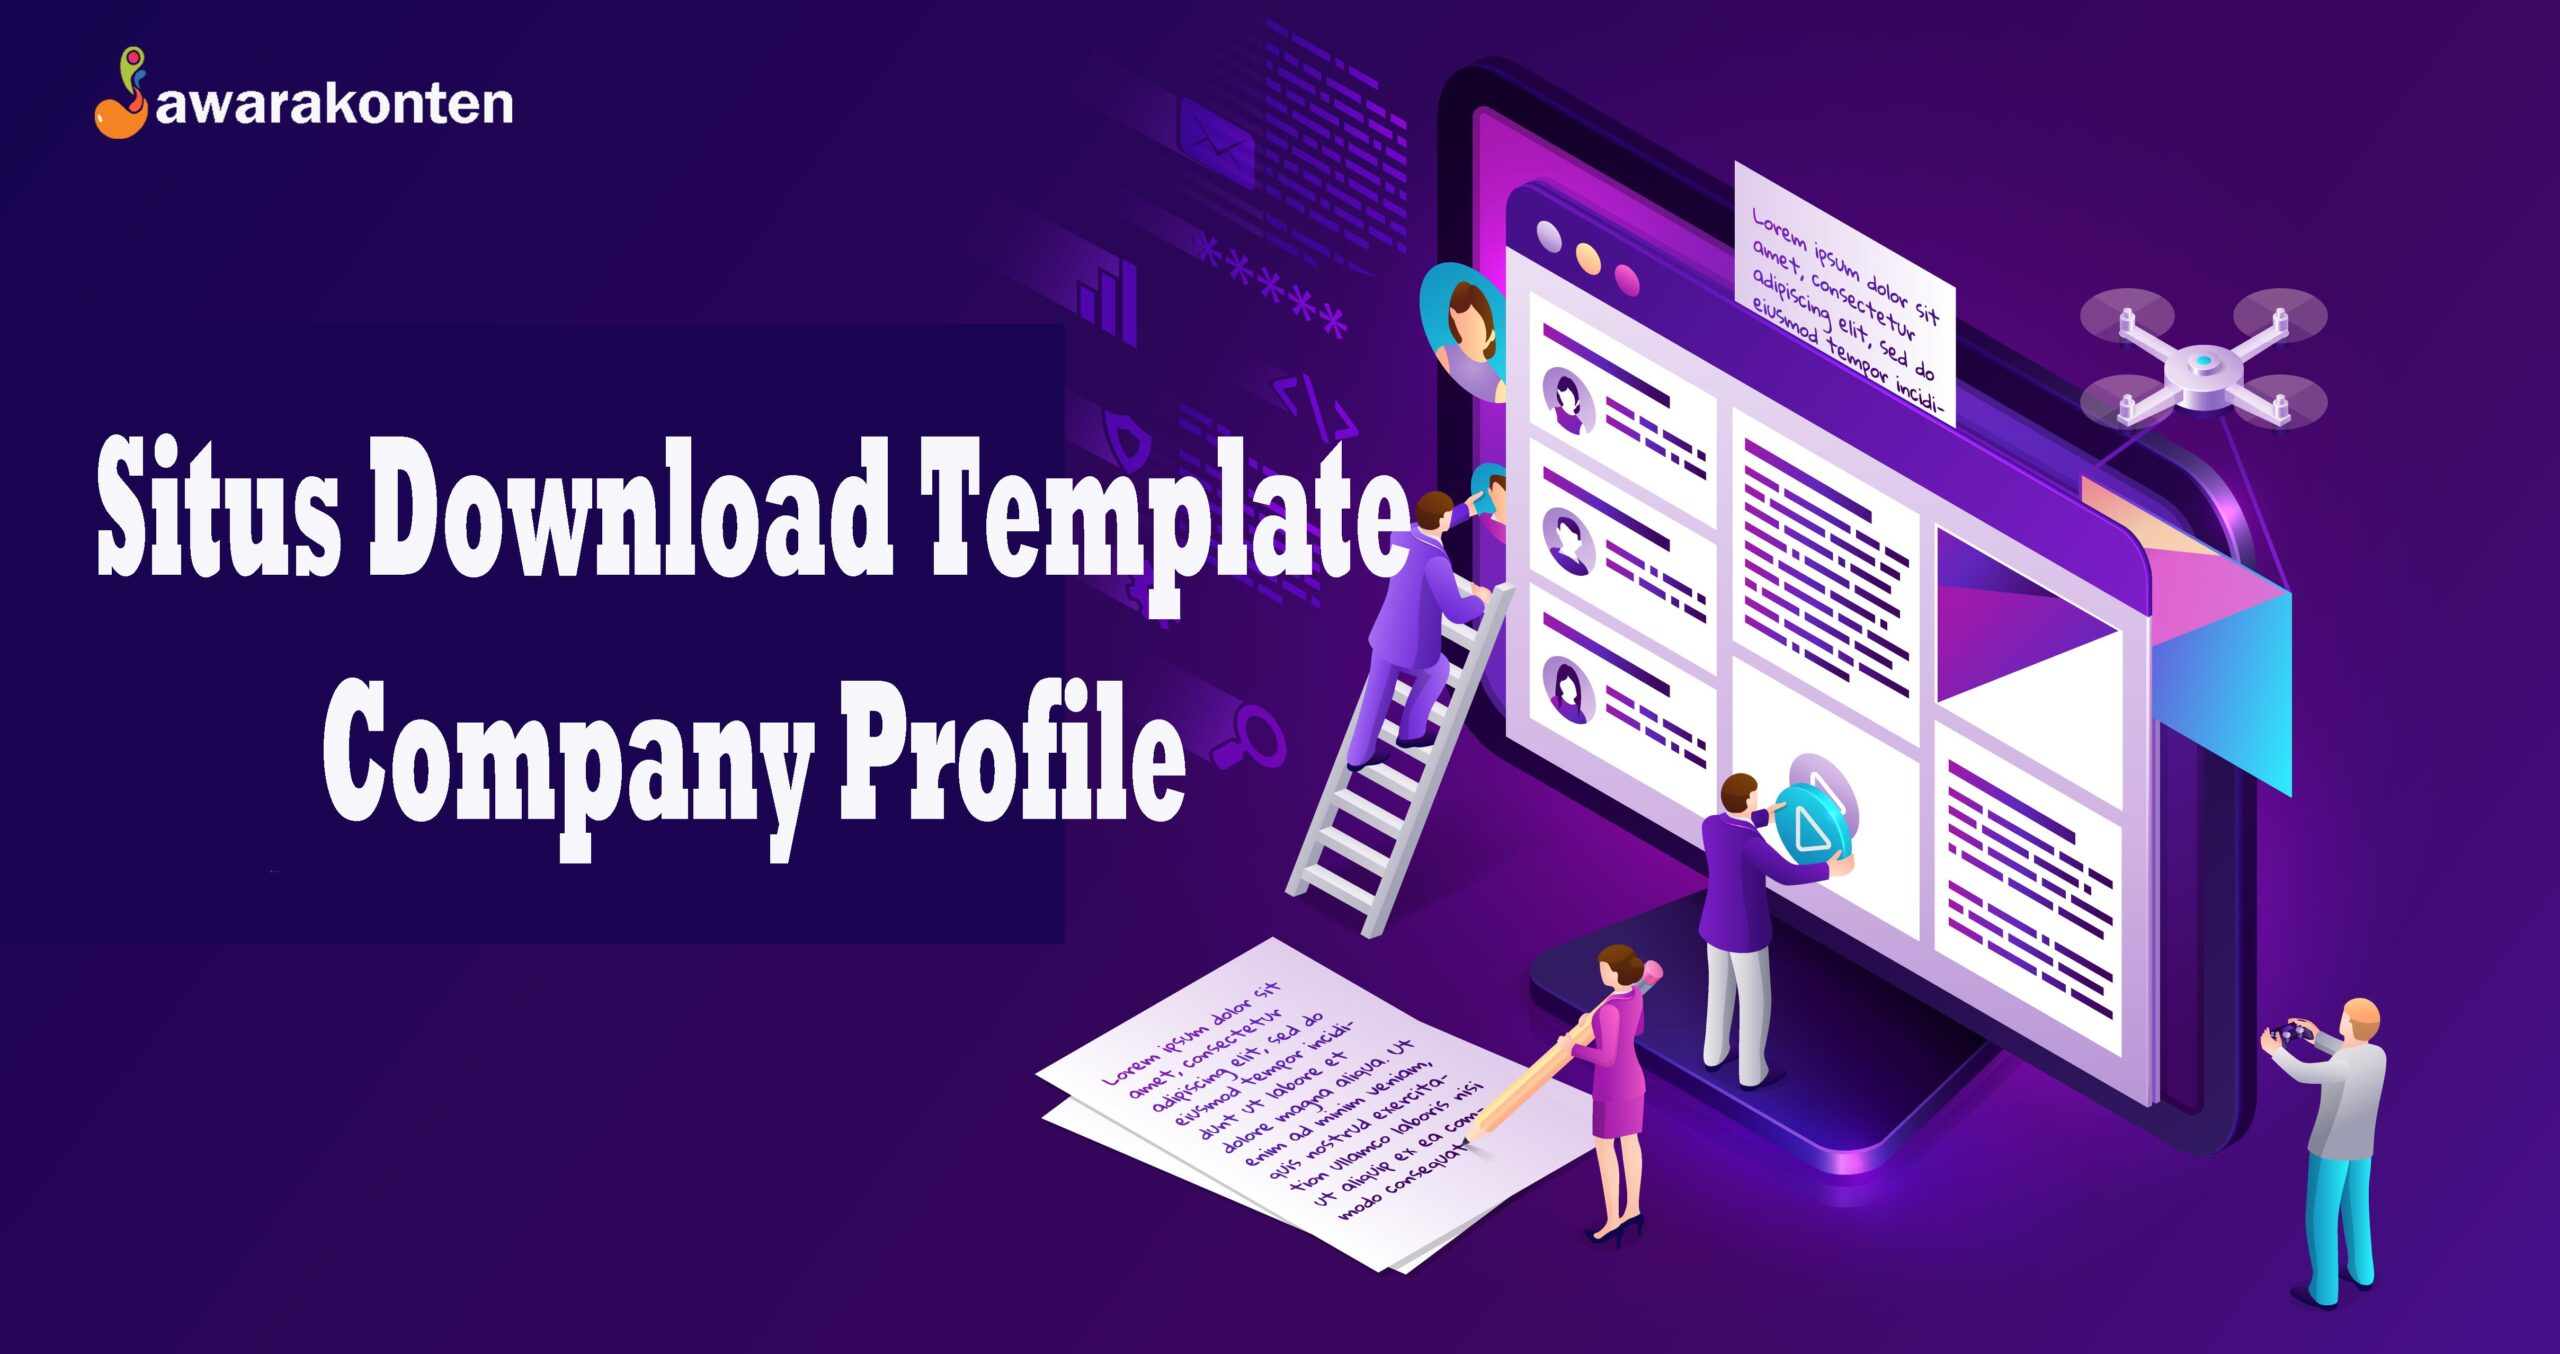 situs download template company profile